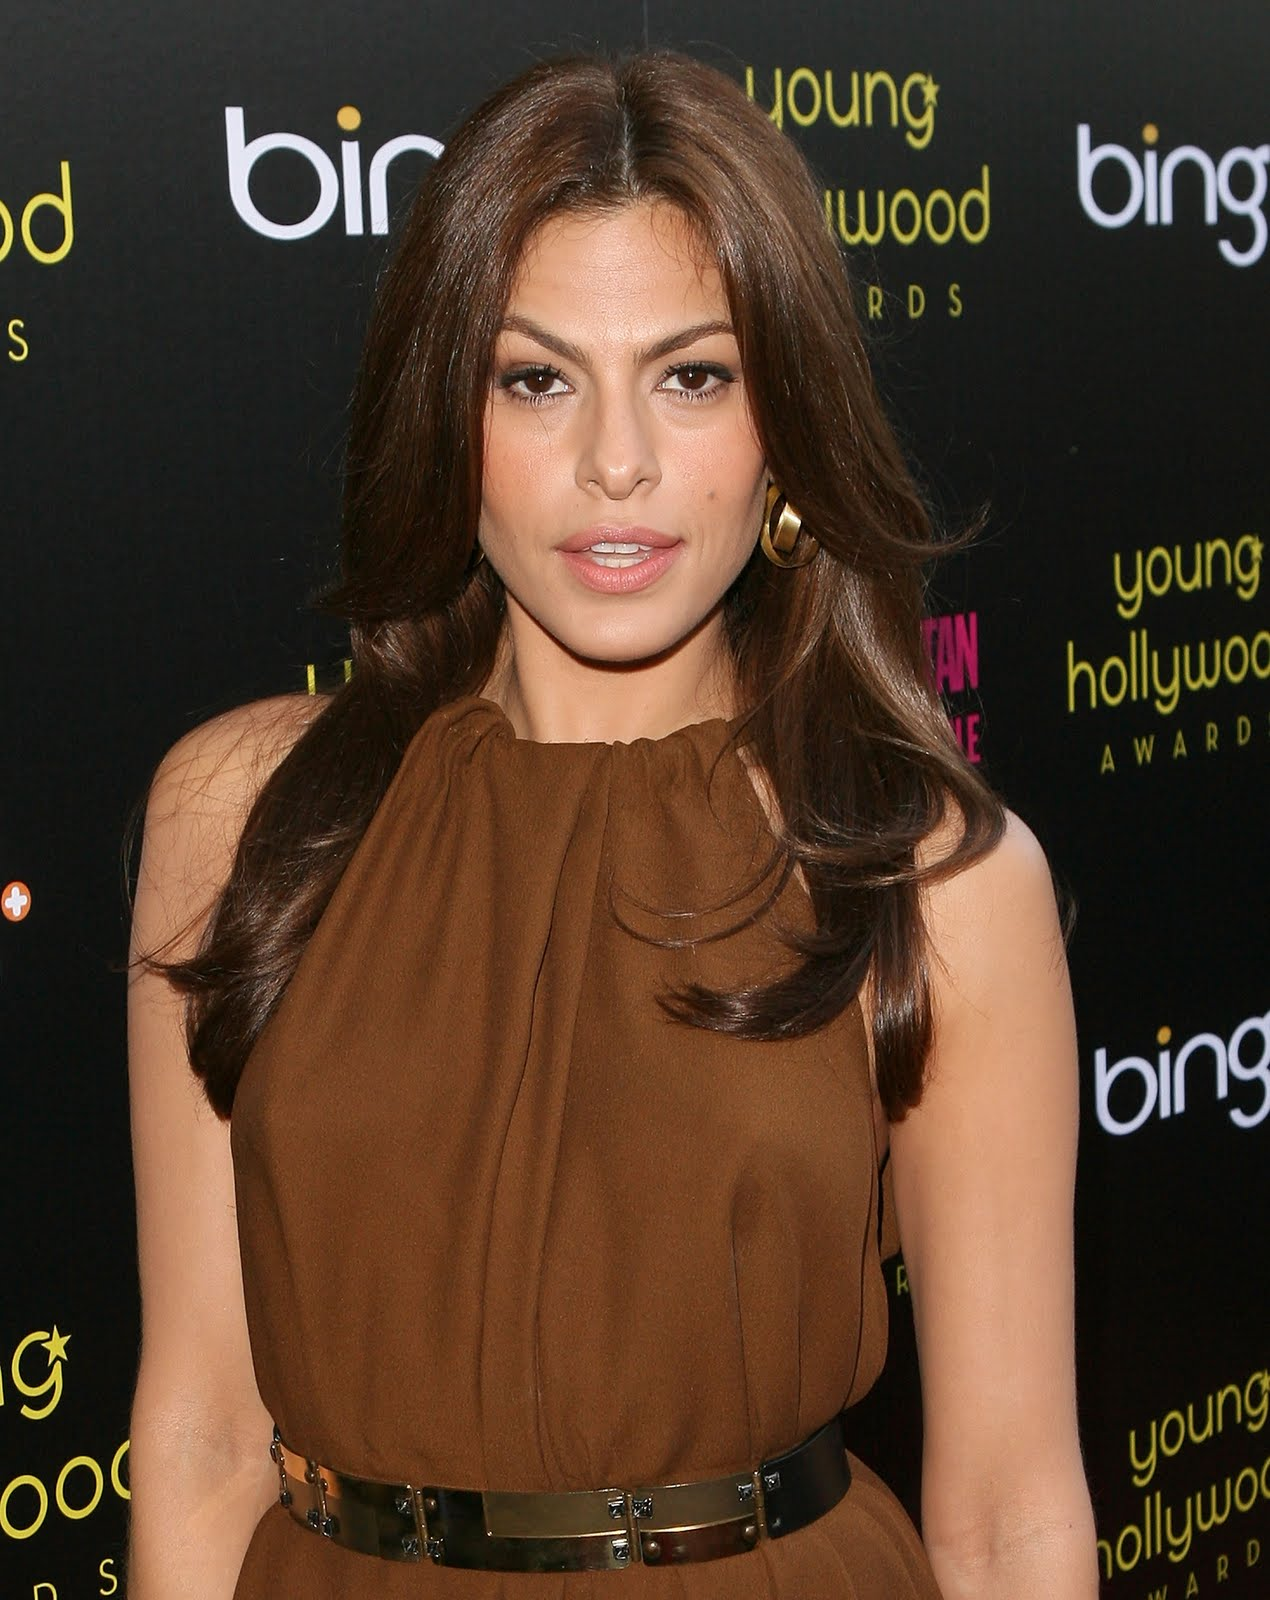 Hot and sexy eva mendes images at bing event